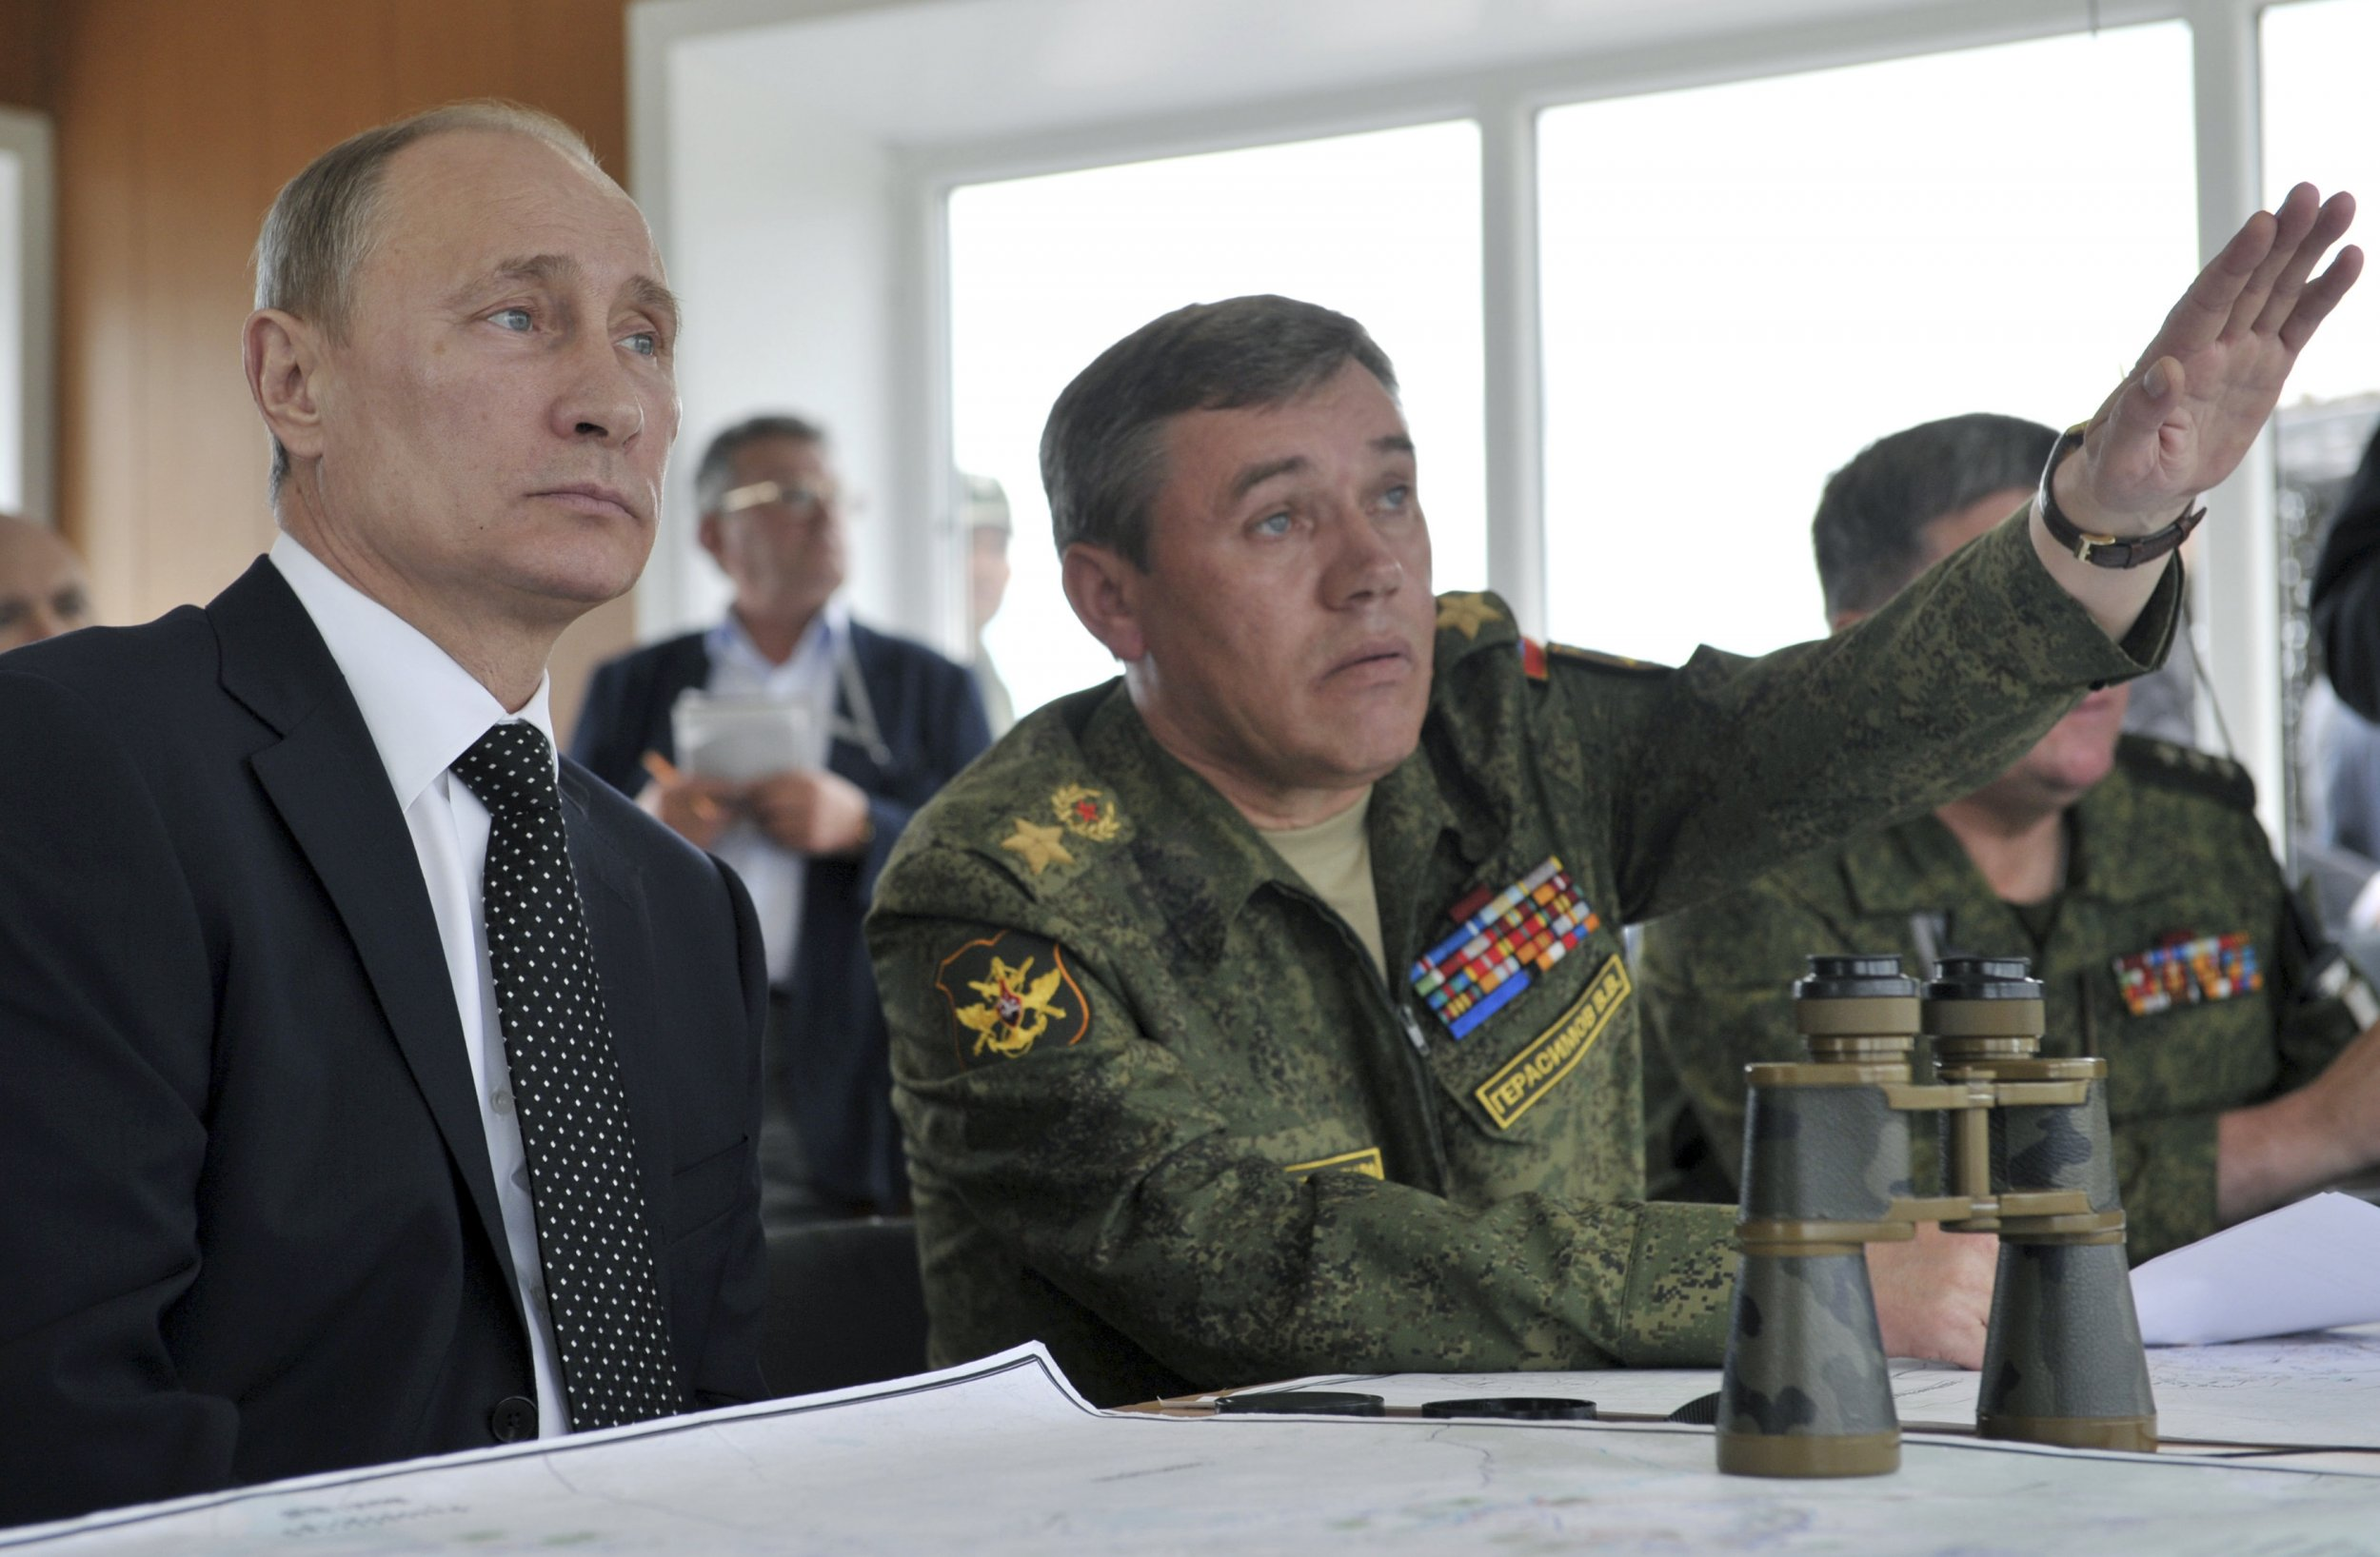 Putin and Gerasimov